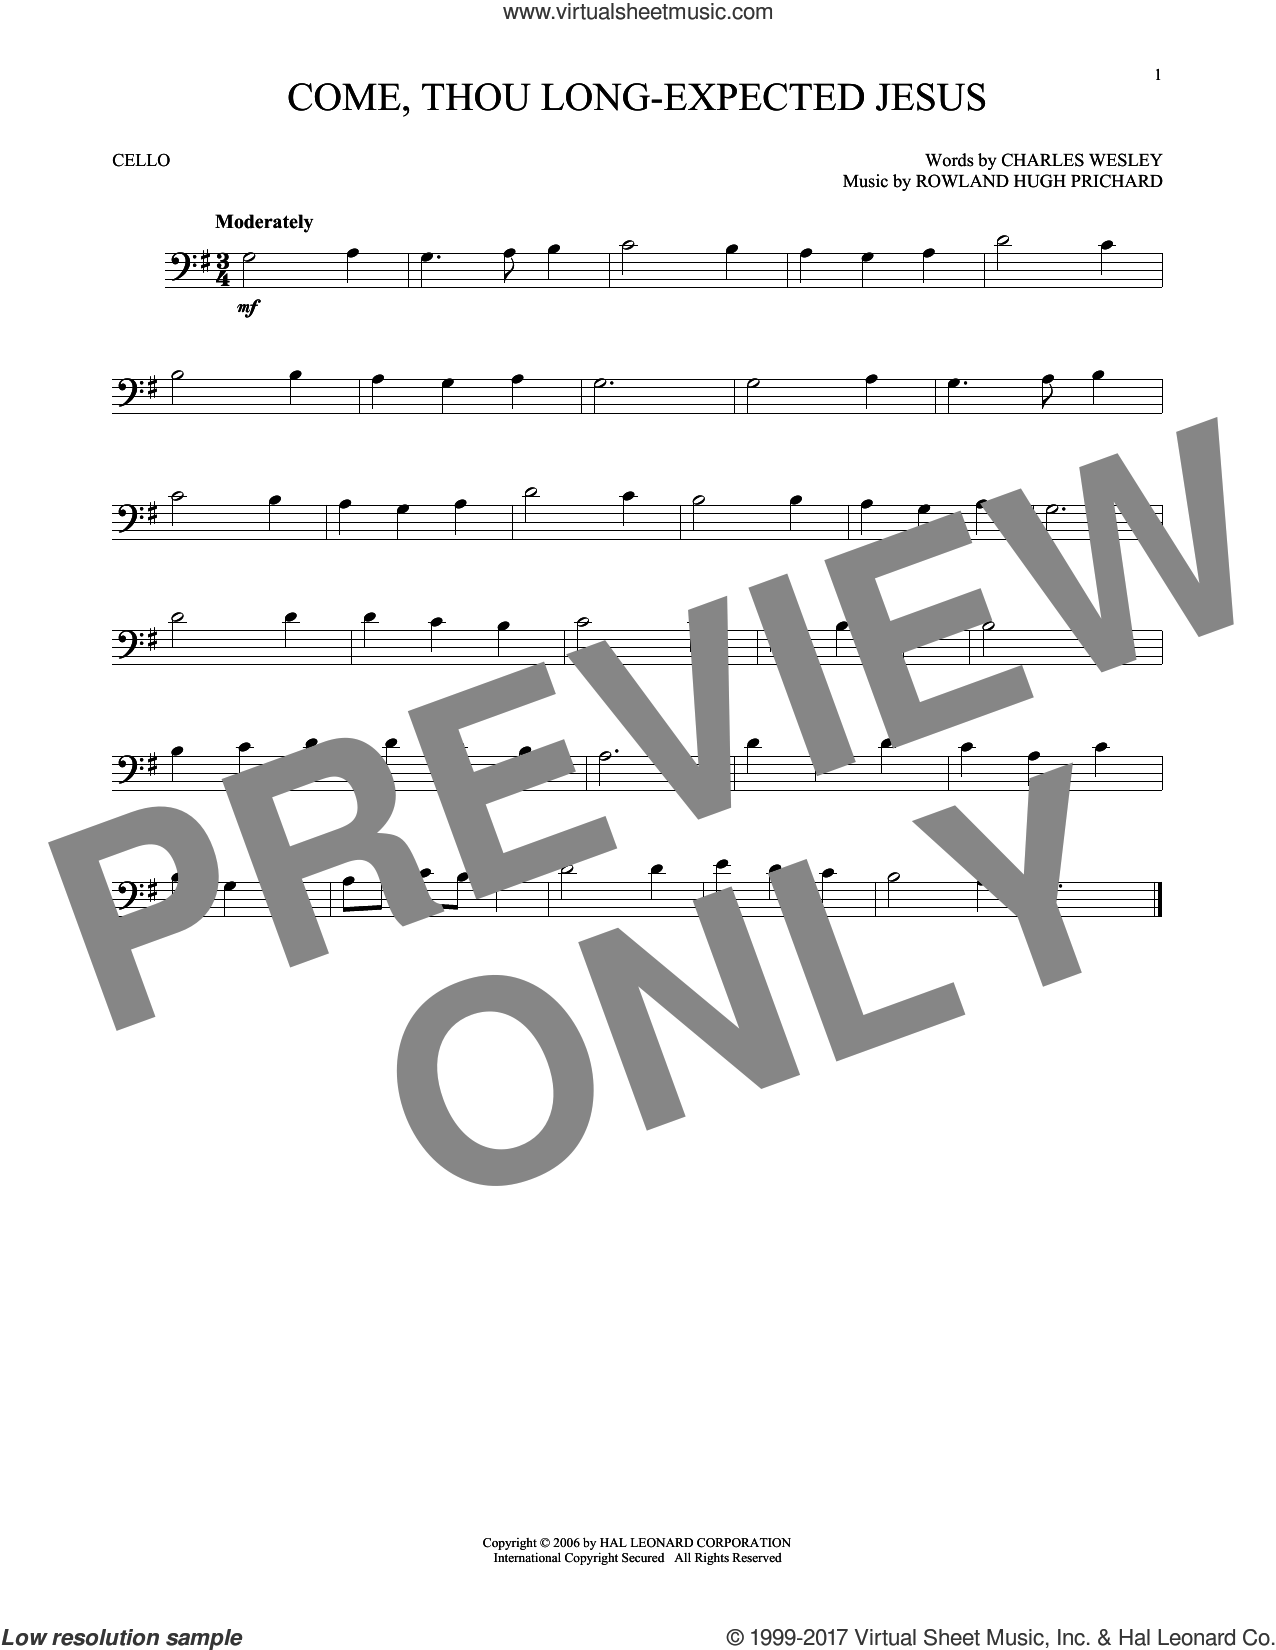 Come, Thou Long-Expected Jesus sheet music for cello solo by Charles Wesley and Rowland Prichard, intermediate skill level